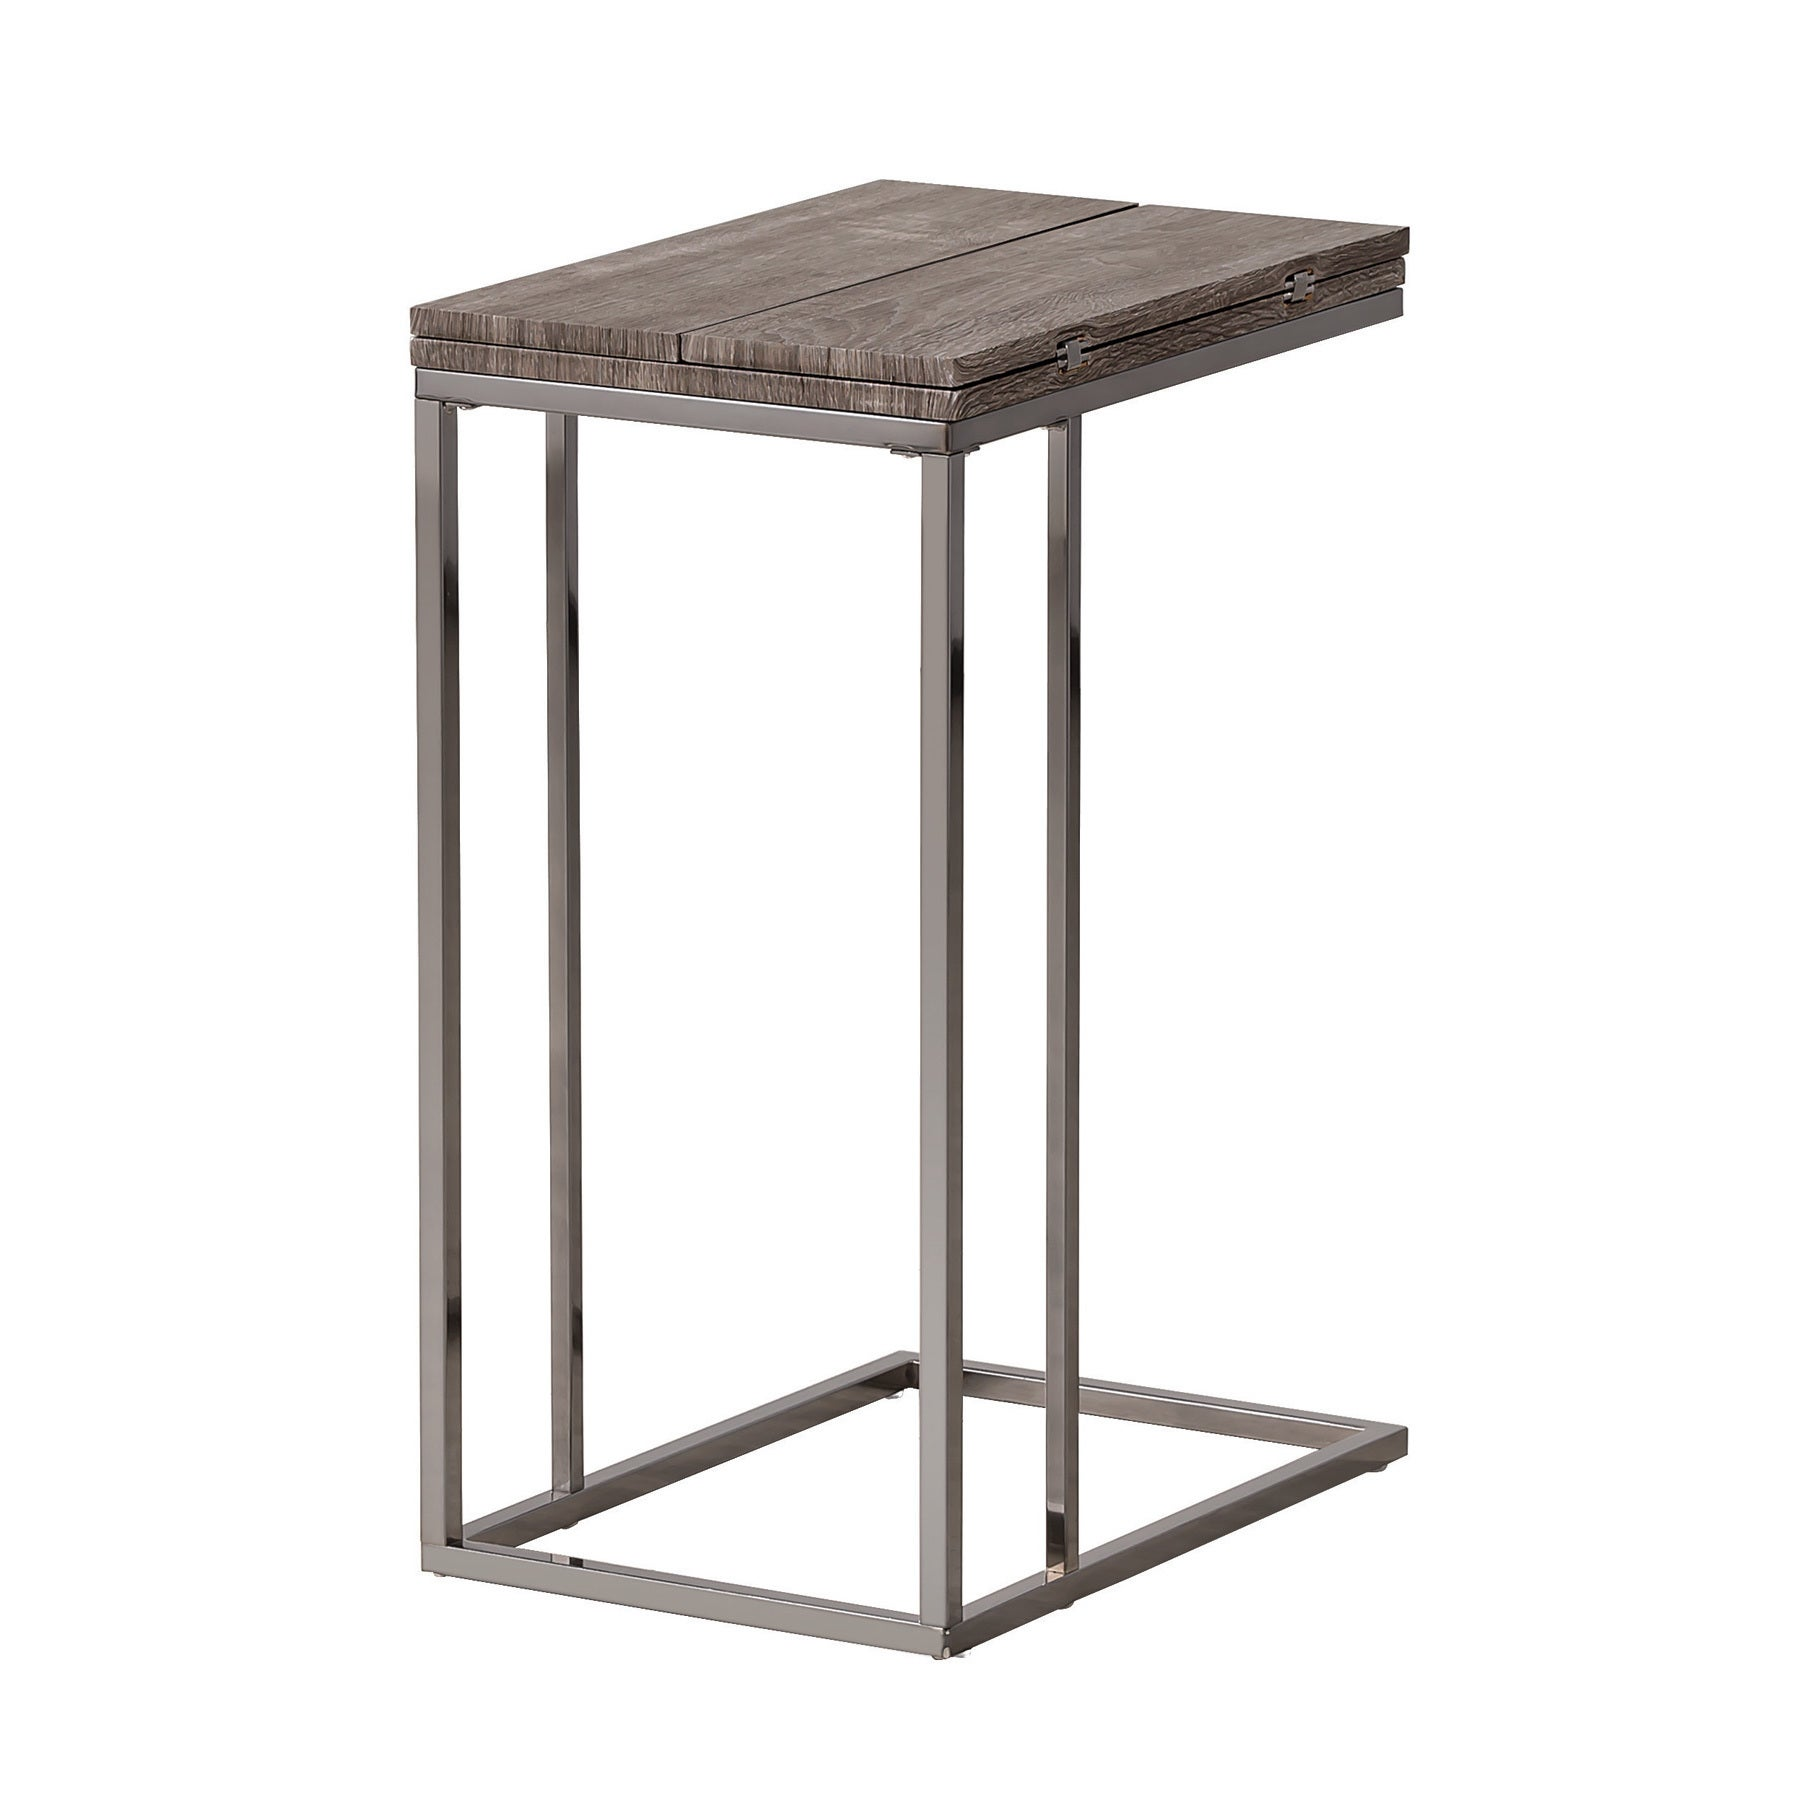 Super Details About Coaster Company Weathered Wood And Metal Snack Table 12 X Grey Short Links Chair Design For Home Short Linksinfo